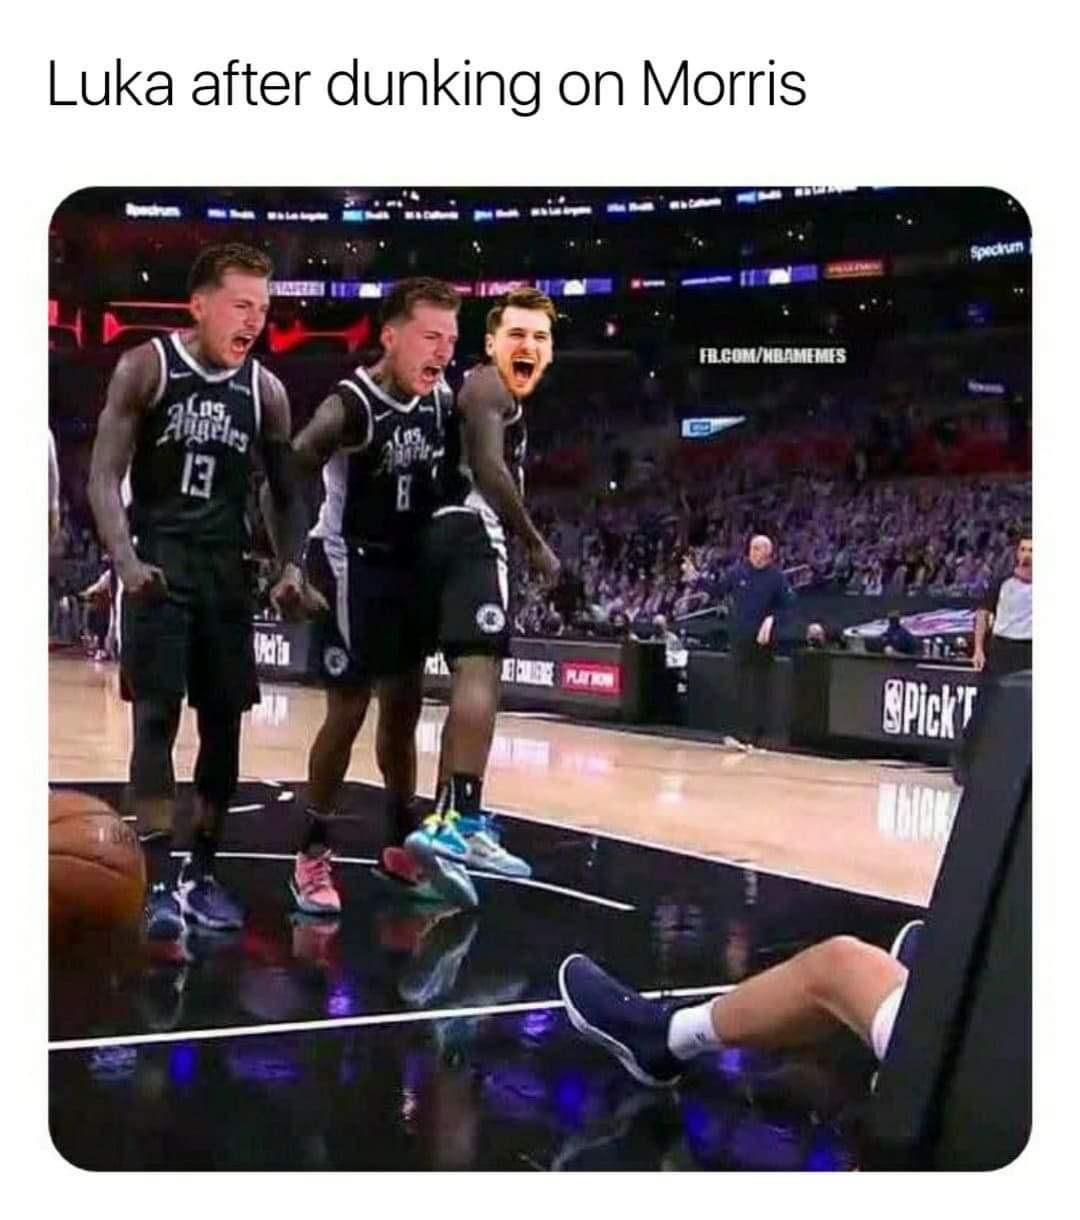 🎥 Luka Doncic gets revenge on Marcus Morris with nasty poster: story in bio